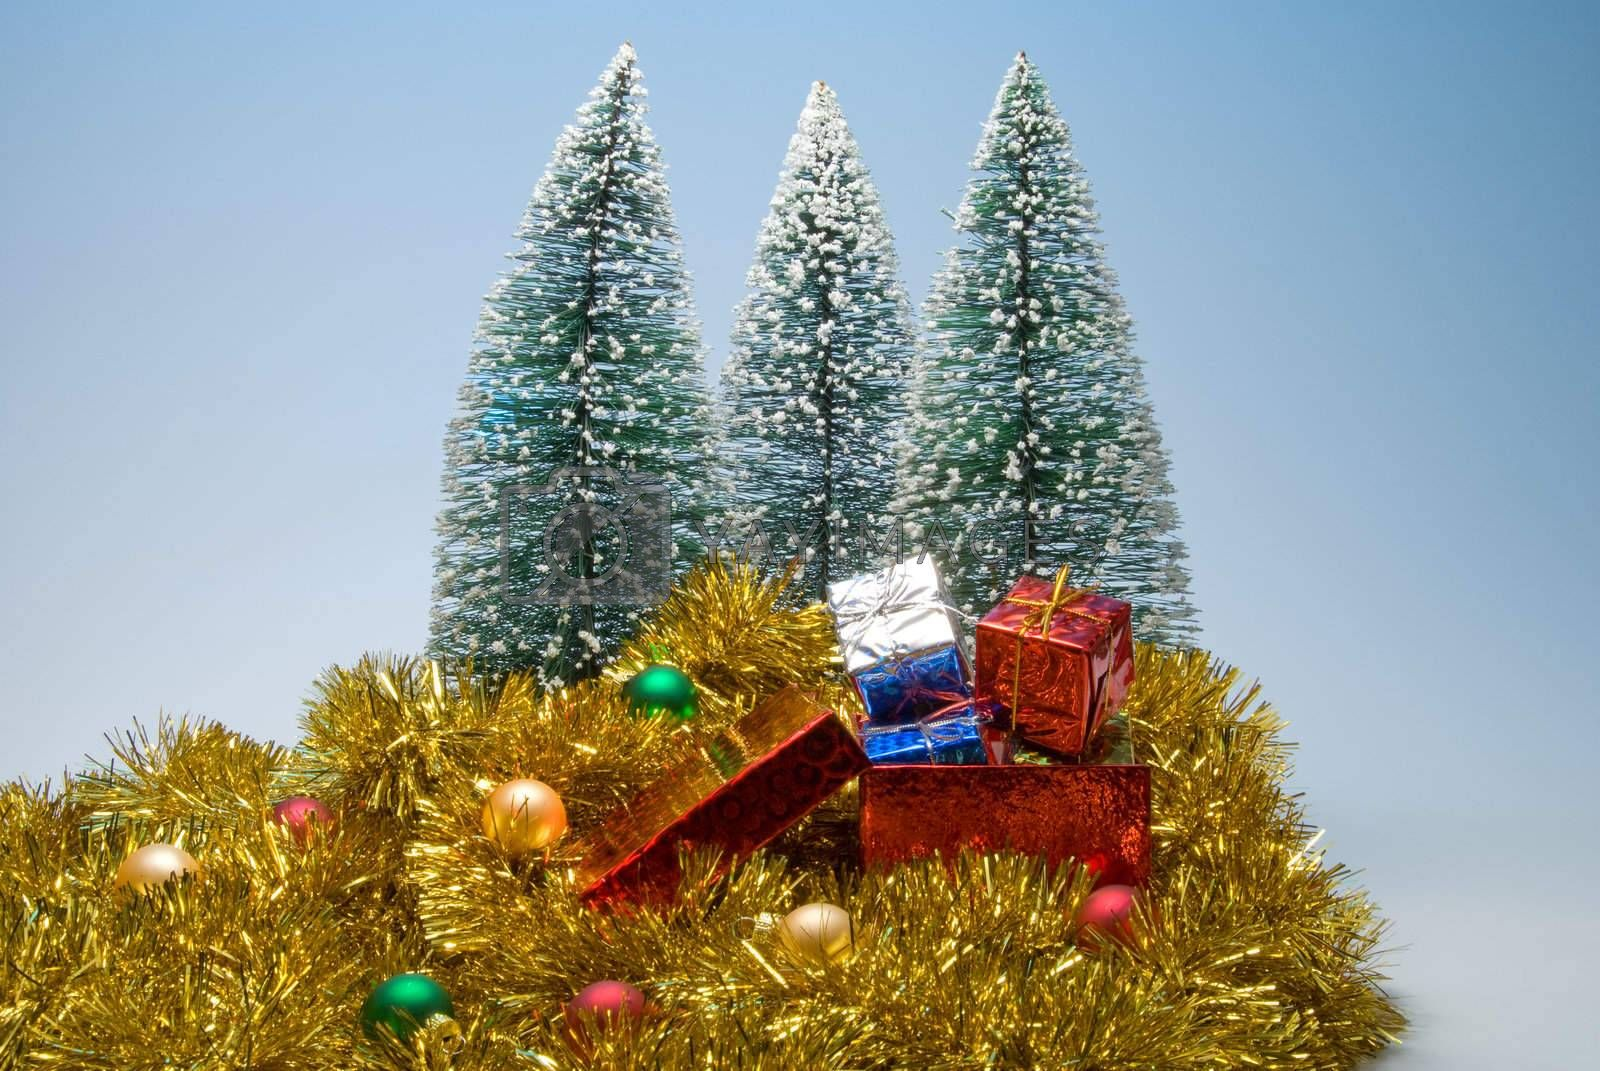 Several Christmas presents in festive holiday boxes.